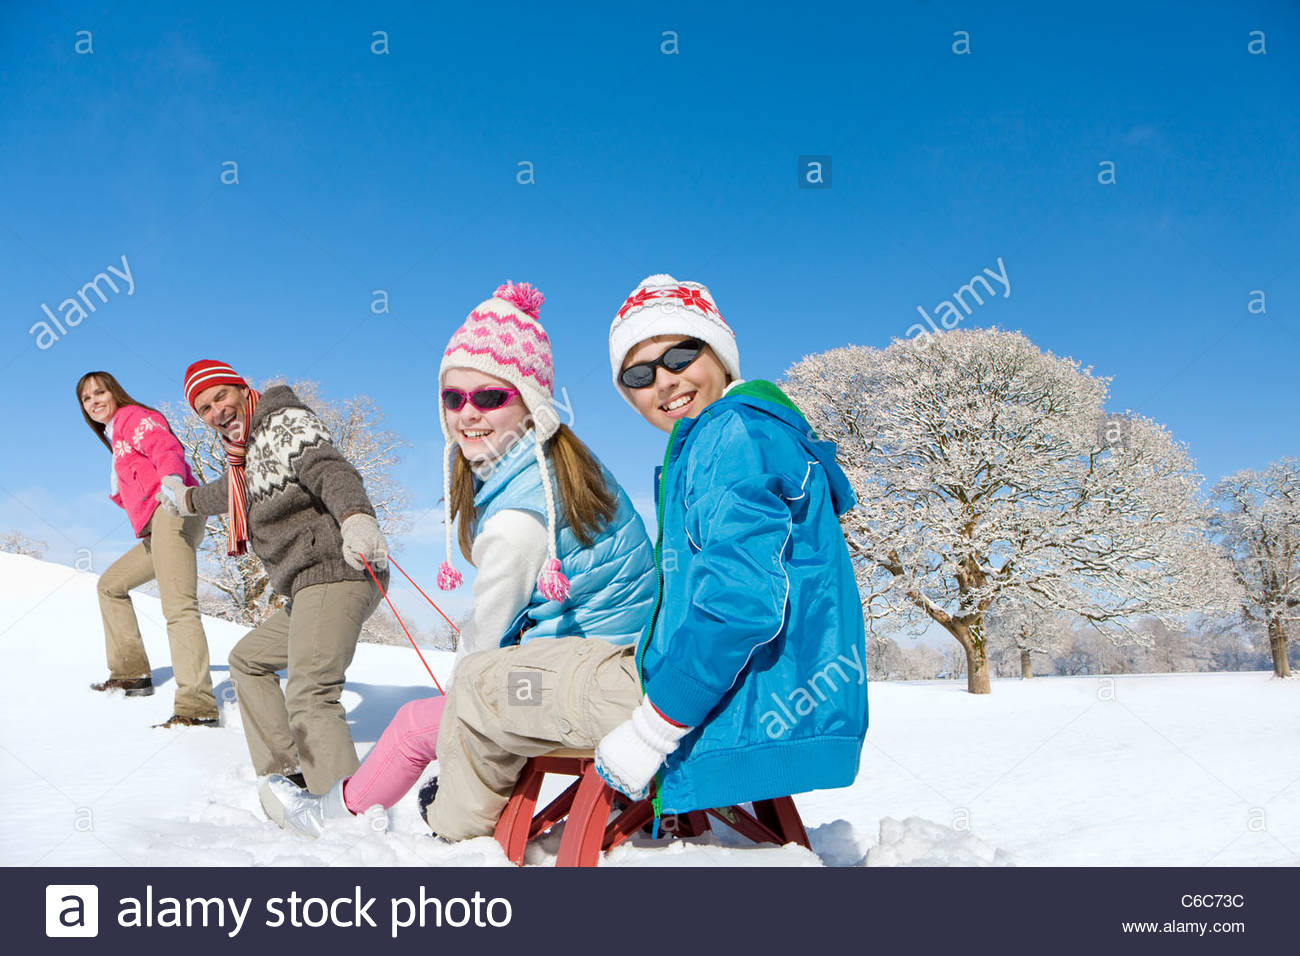 Portrait of parents pulling children on sled in sunny, snowy field - Stock Image